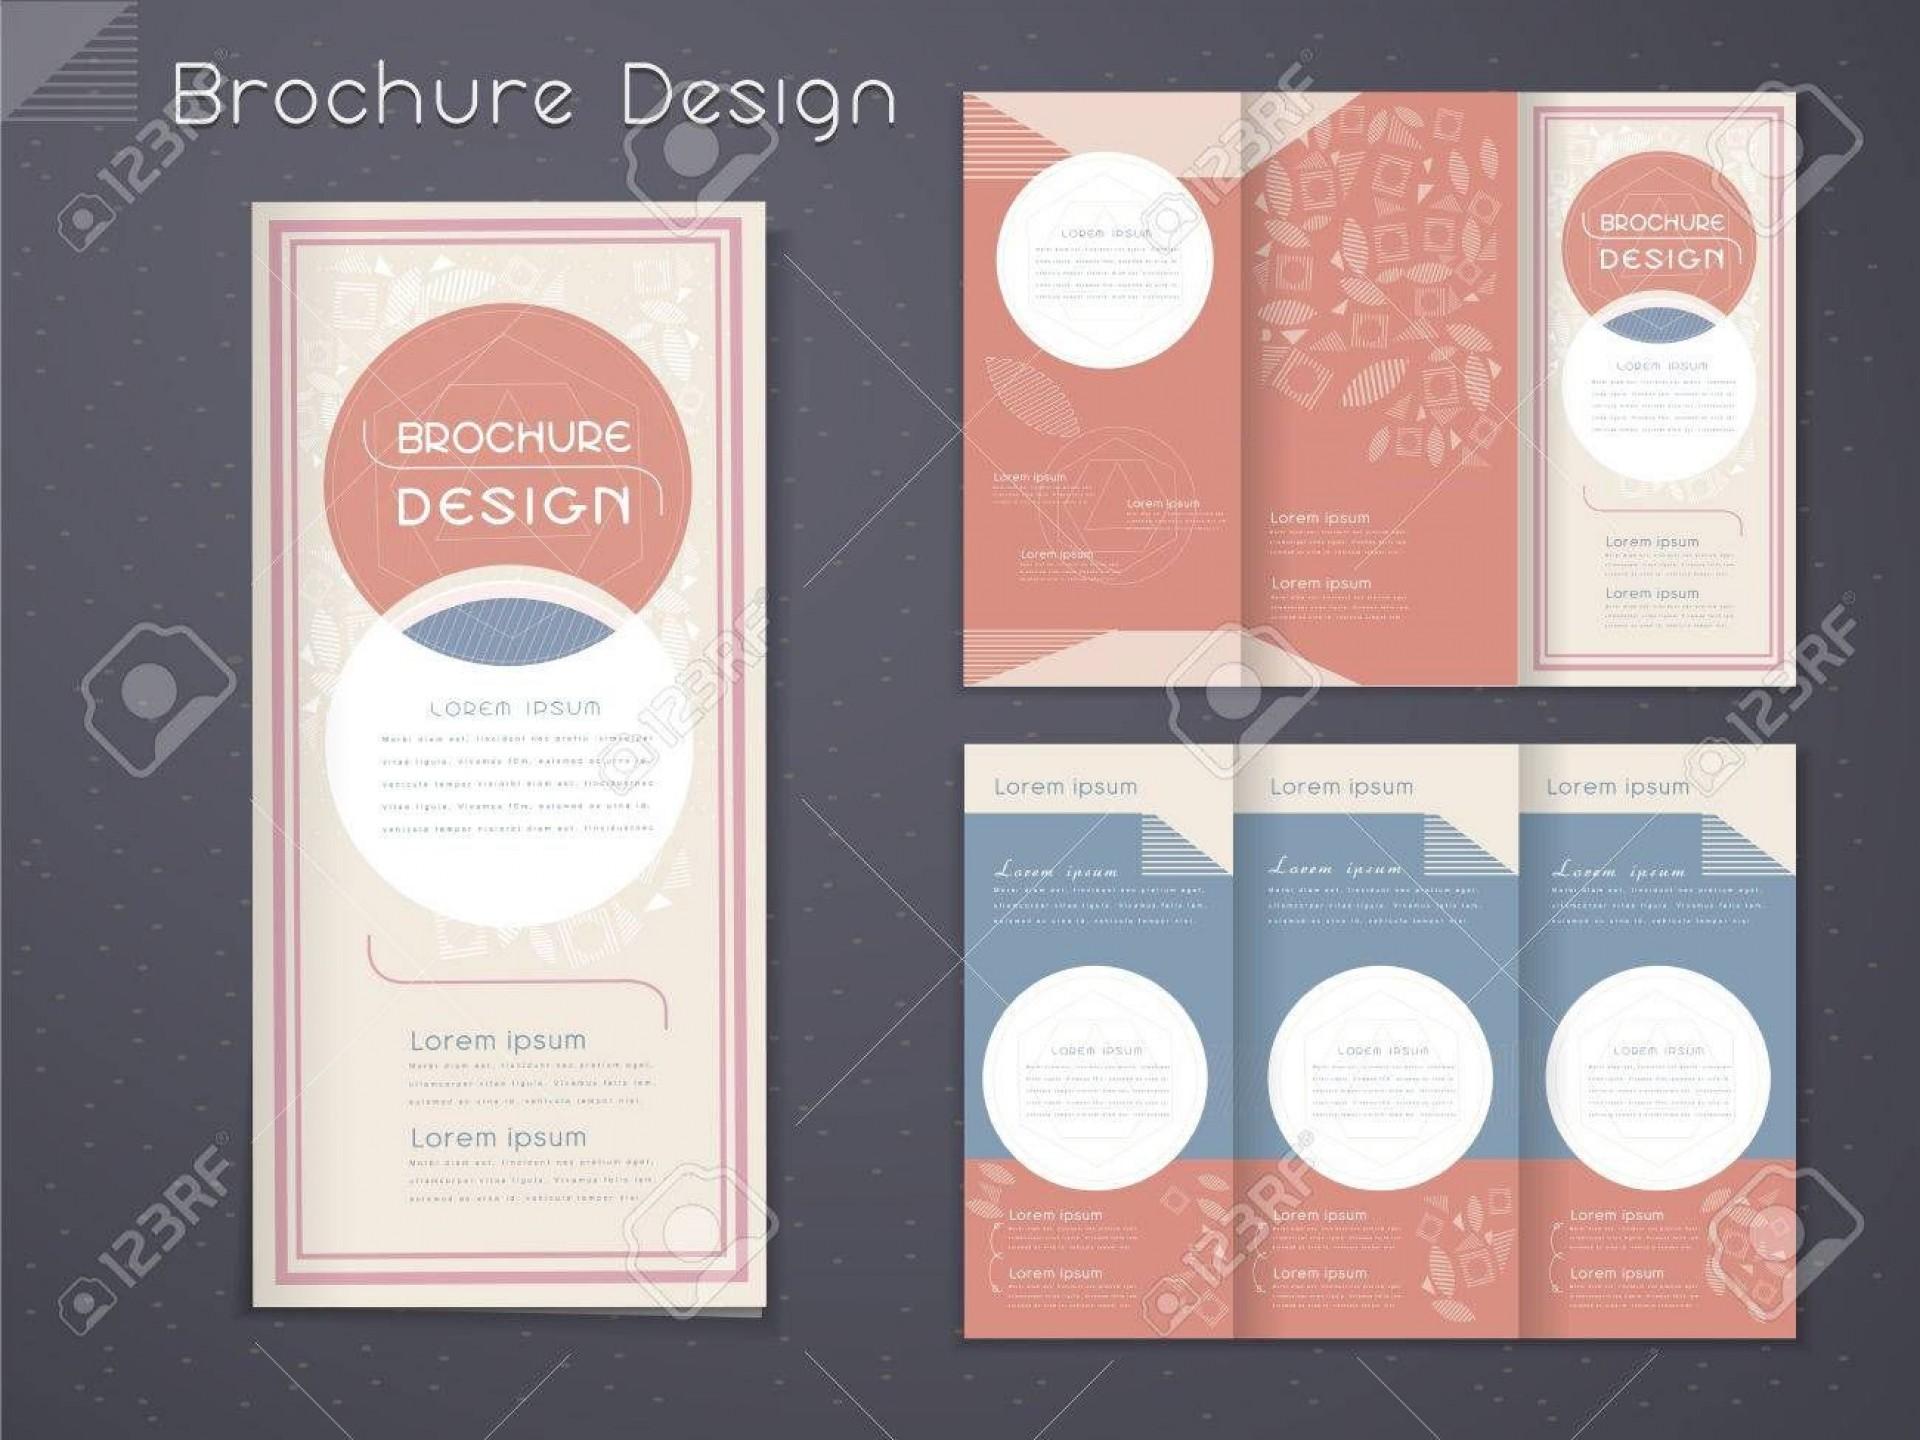 002 Remarkable Tri Fold Brochure Template Free High Definition  Download Photoshop M Word Tri-fold Indesign Mac1920